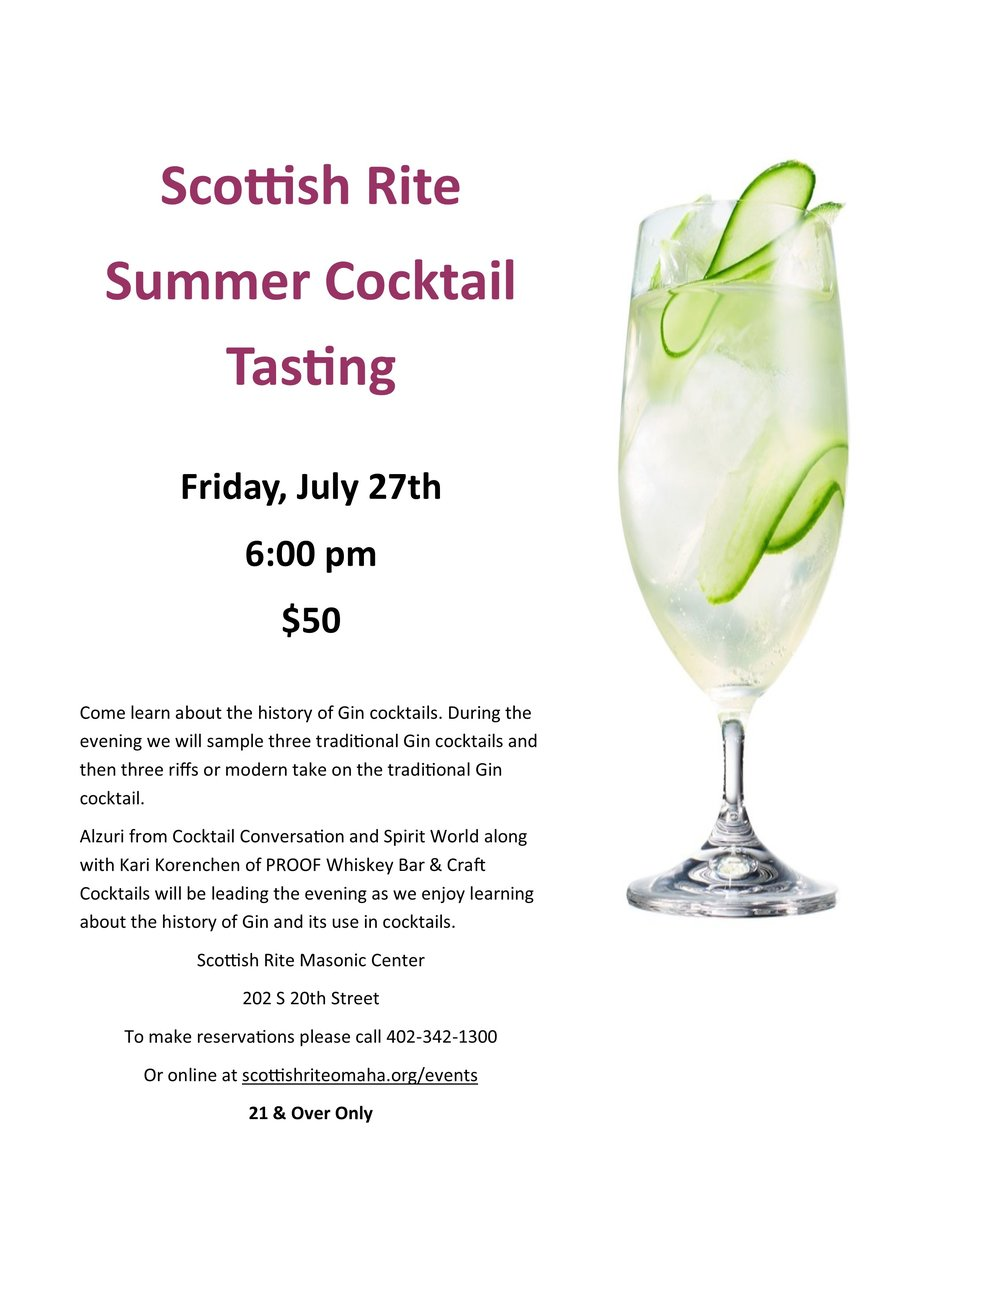 Click above to download a PDF of the cocktail tasting flier.